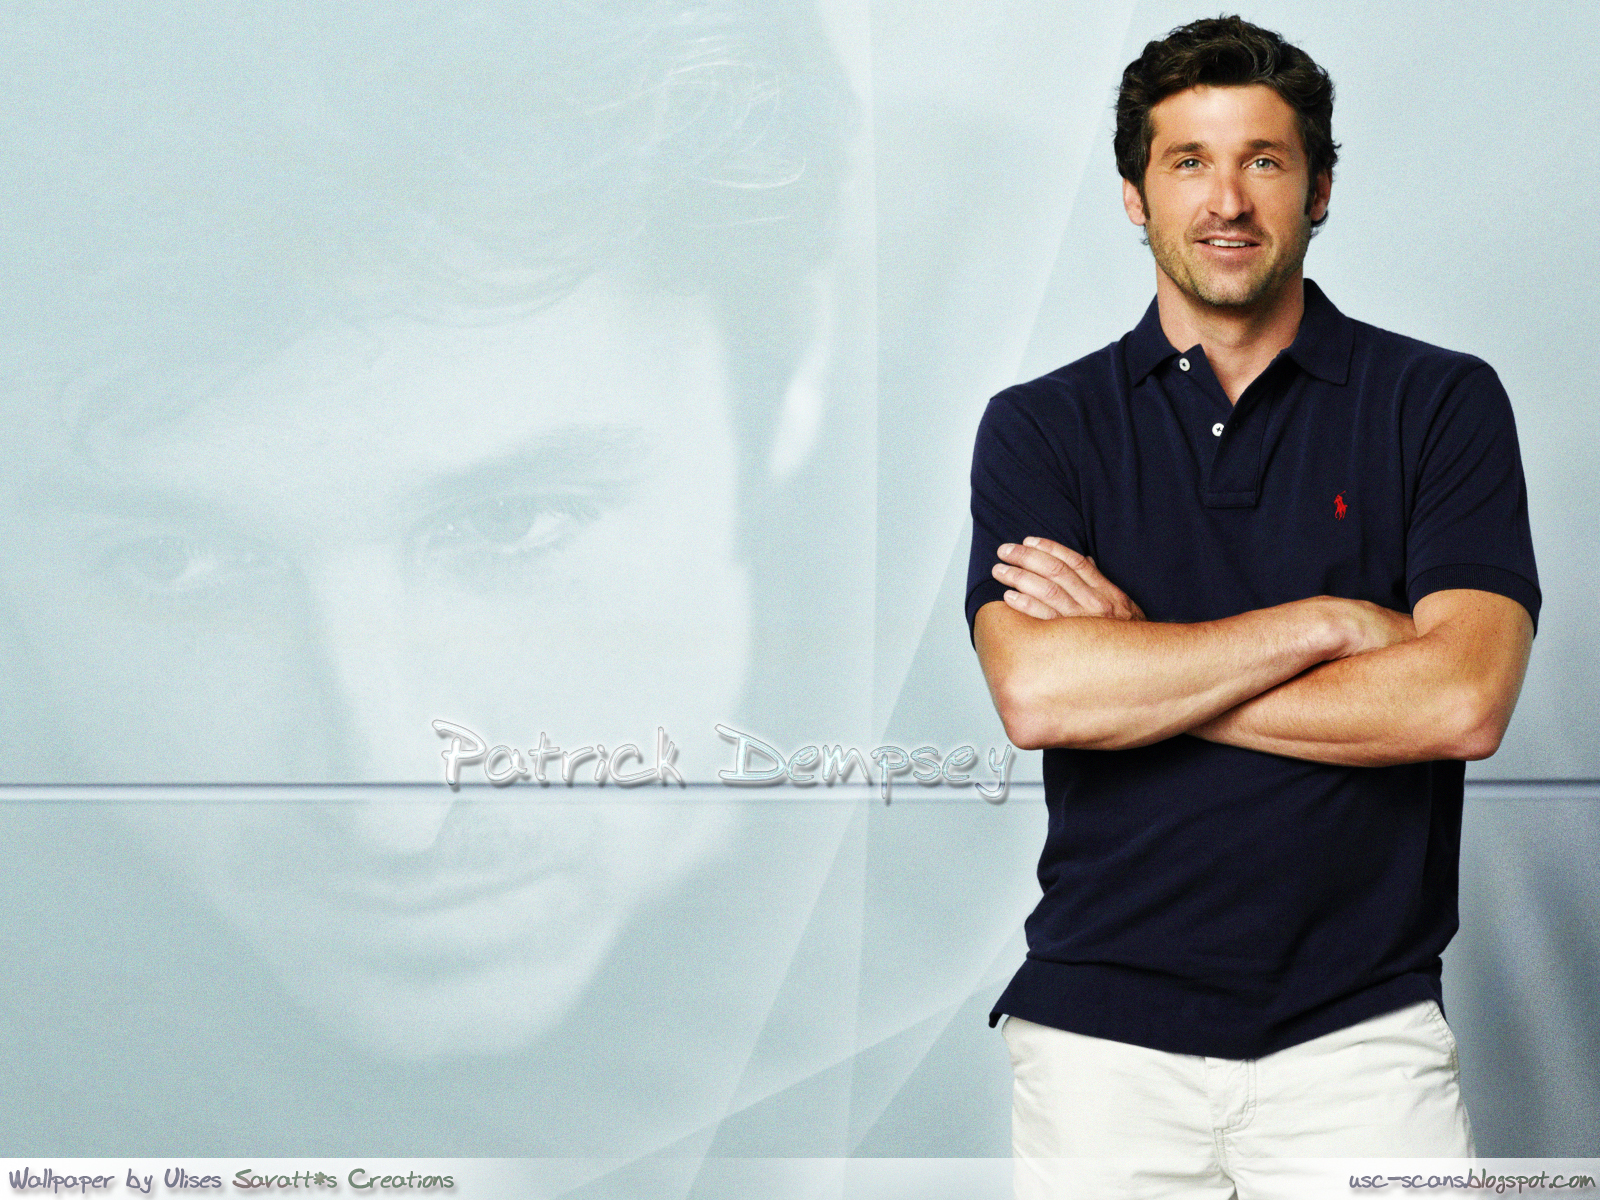 Patrick Dempsey - Wallpaper Gallery